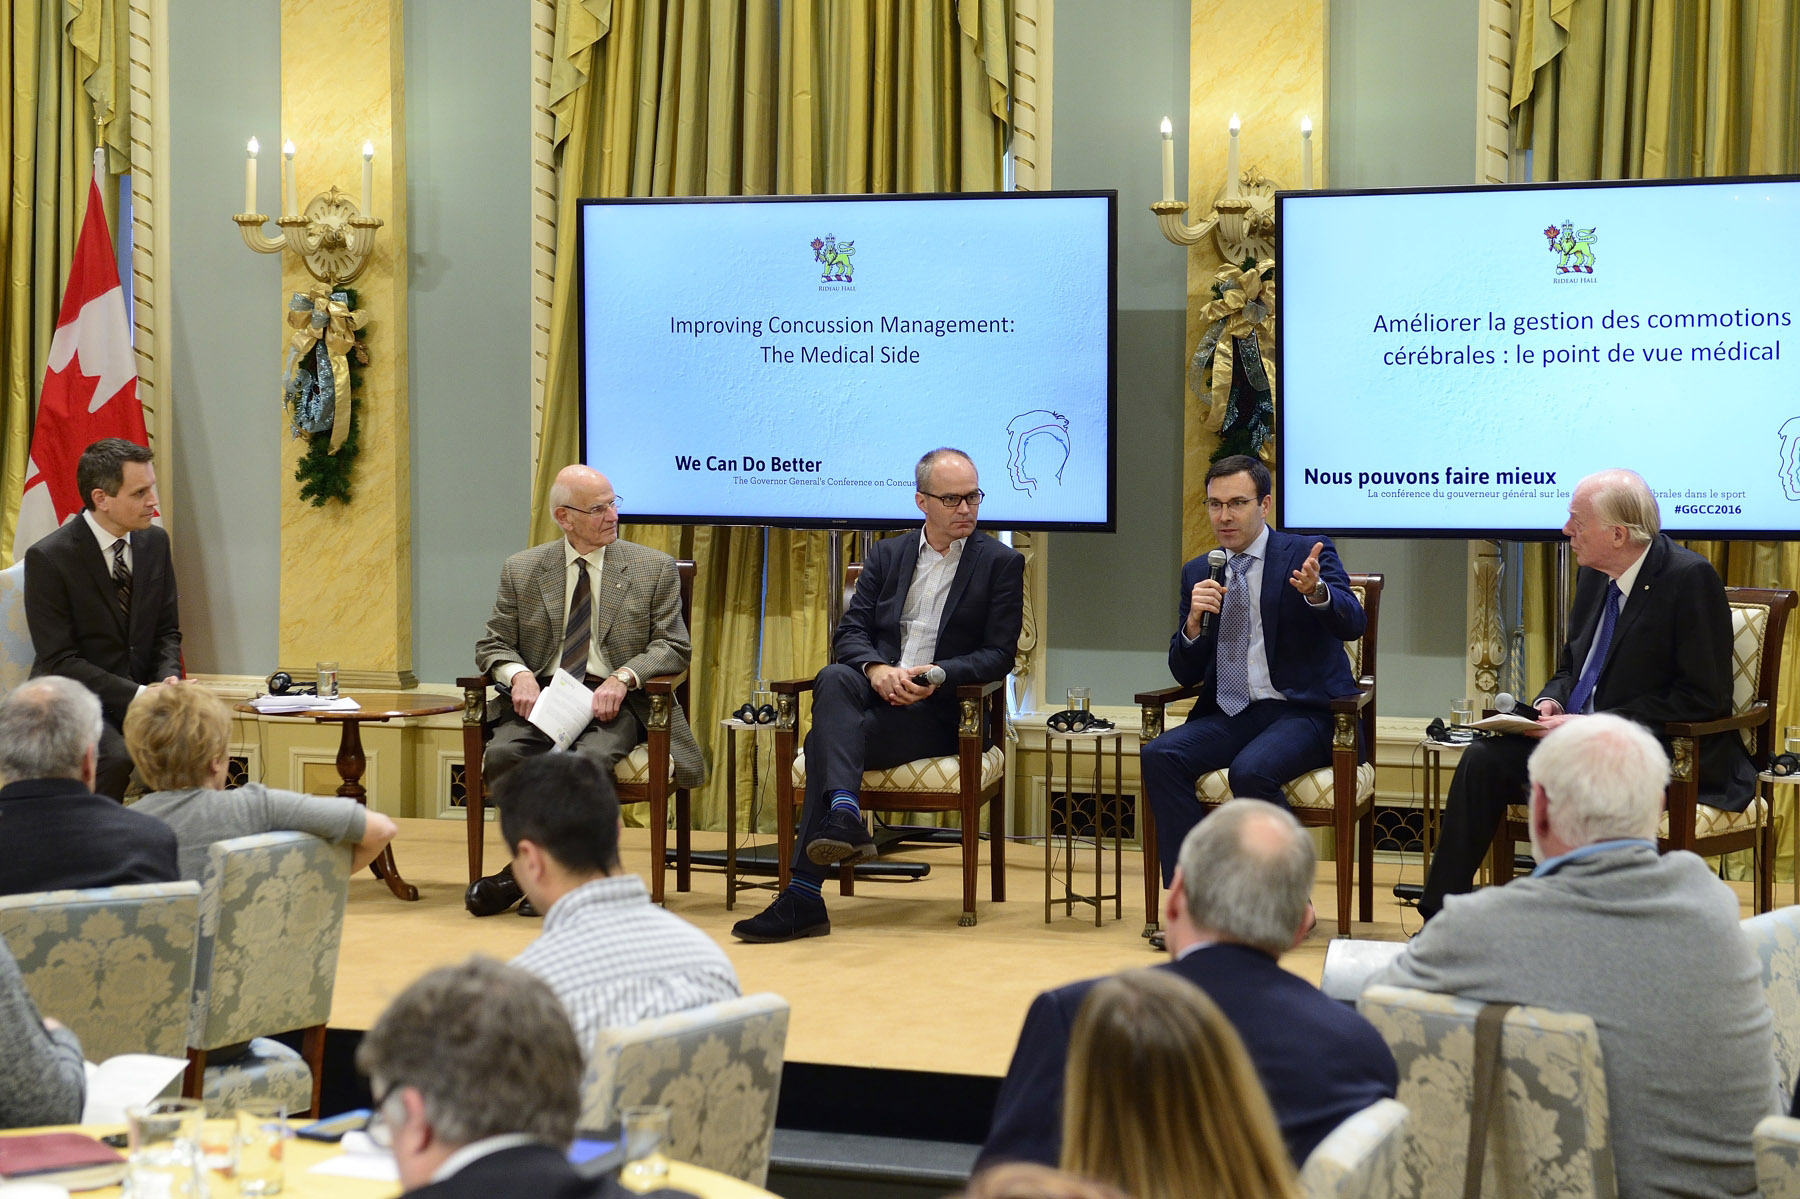 "The third panel ""Improving Concussion Management–The Medical Perspective"" gathered Canadian medical experts on the issue of concussions. Featured on this panel were (from left to right) Dr. Charles Tator, Neurosurgeon at Krembil Neuroscience Centre and Toronto Western Hospital, Dr. Pierre Frémont, Professor at the Faculty of Medicine at Laval University and Chair of the Canadian Concussion Collaborative, Dr. Roger Zemek, Associate Professor and Director of Clinical Research at Children's Hospital of Eastern Ontario, and Dr. David Mulder, Team Physician with the Montreal Canadiens."